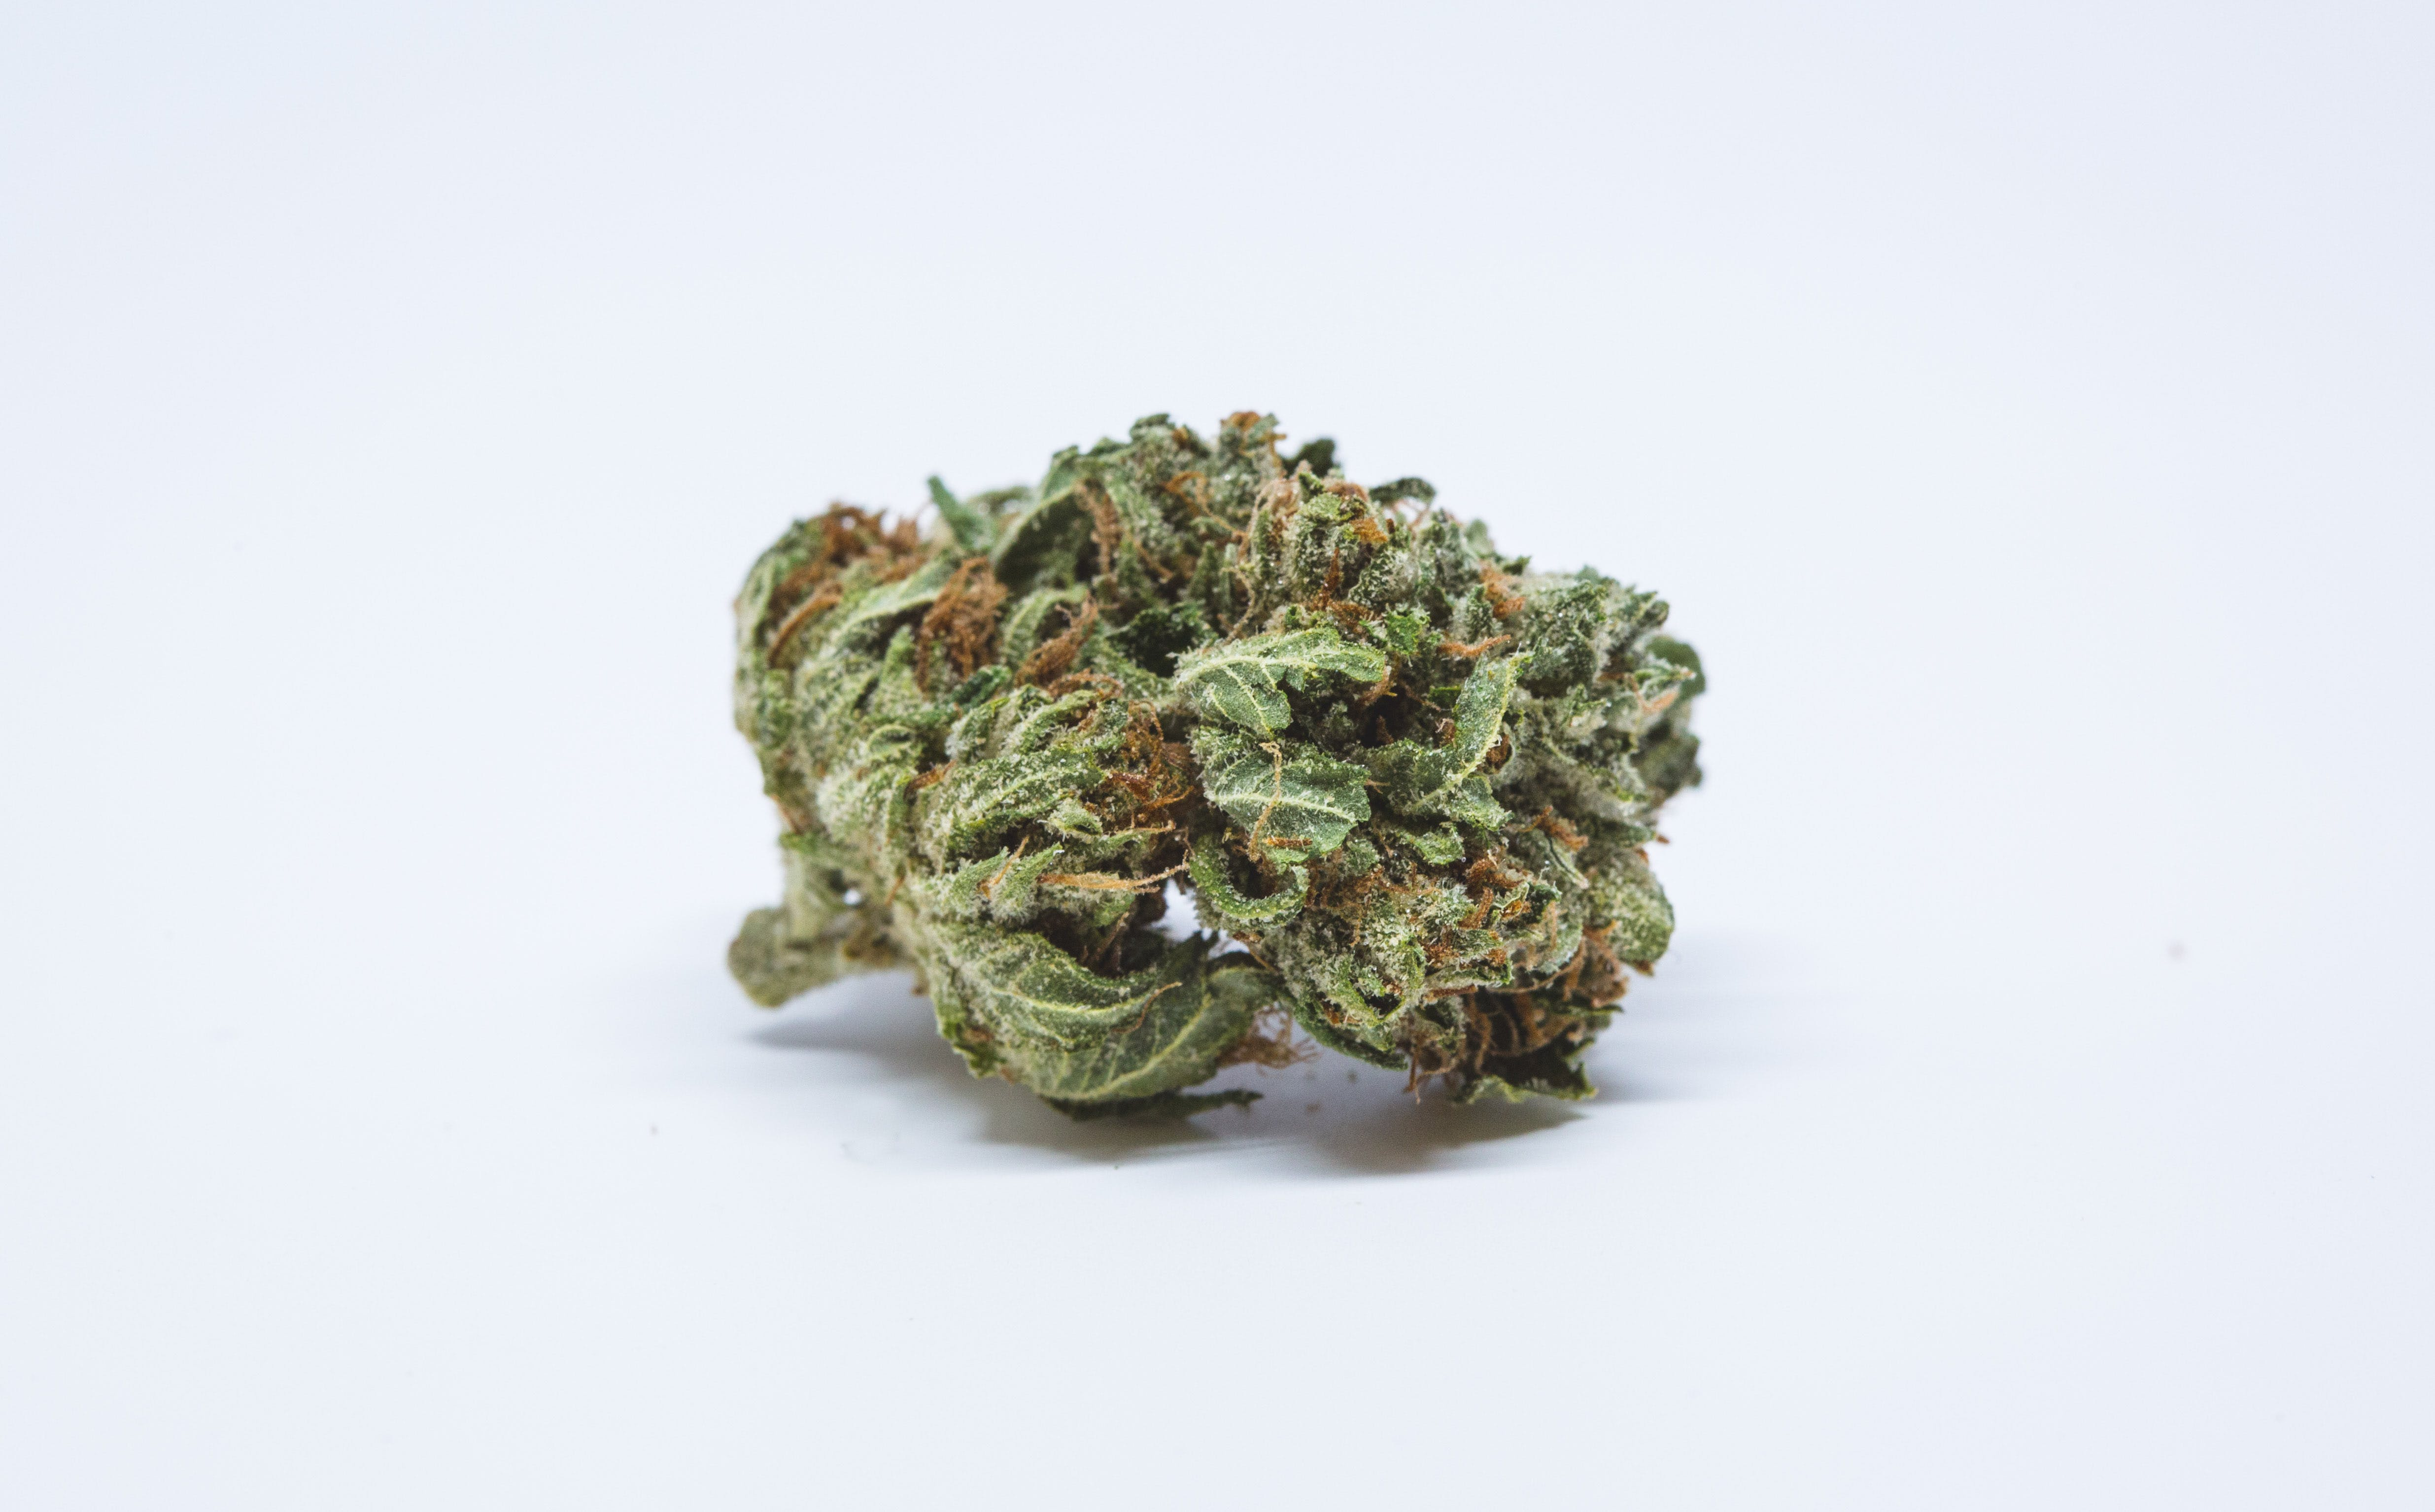 Allevi8 Master Kush 5 The US Military is waving cannabis use and letting medical marijuana patients serve